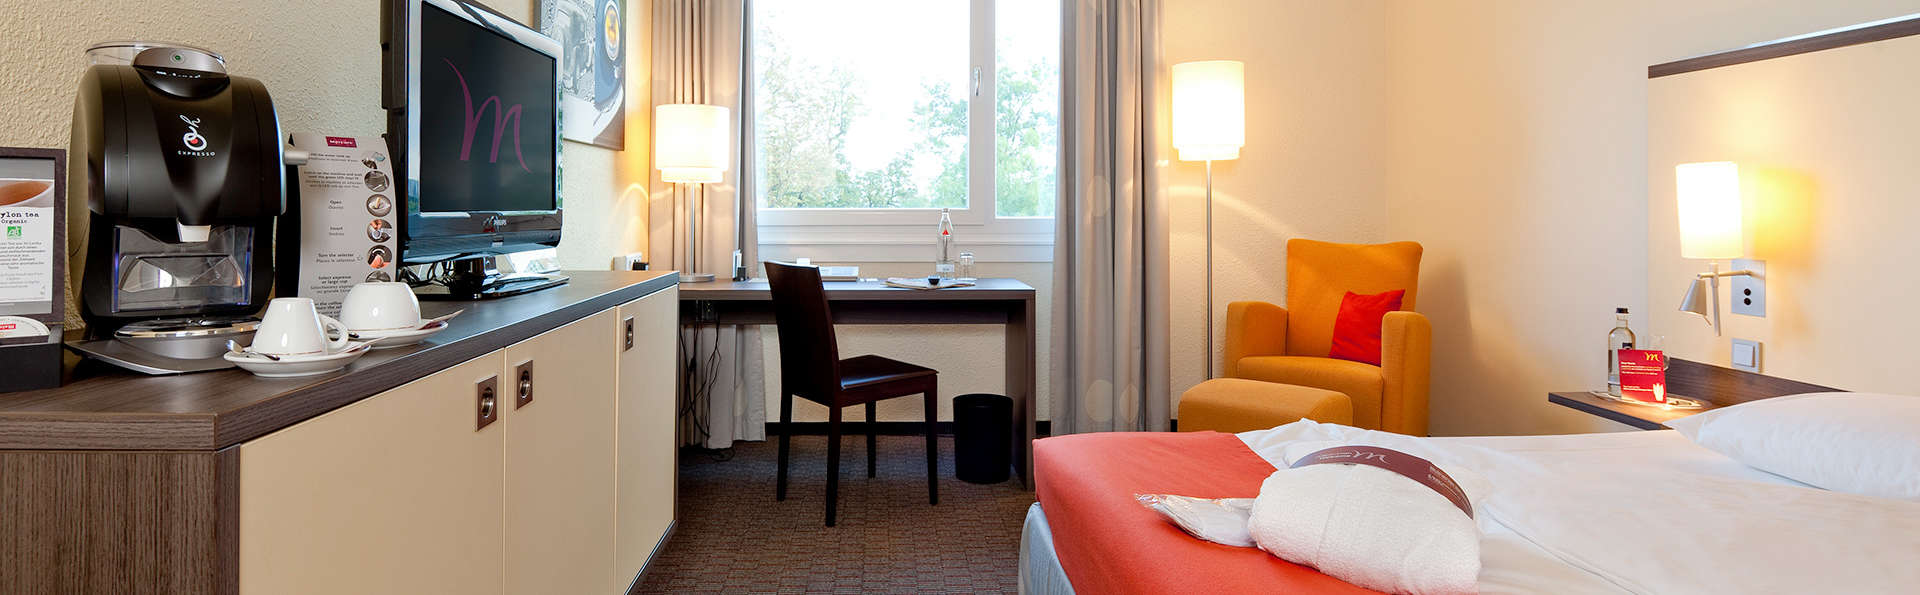 Mercure Hotel Köln West (Cologne / Keulen) - EDIT_room2.jpg